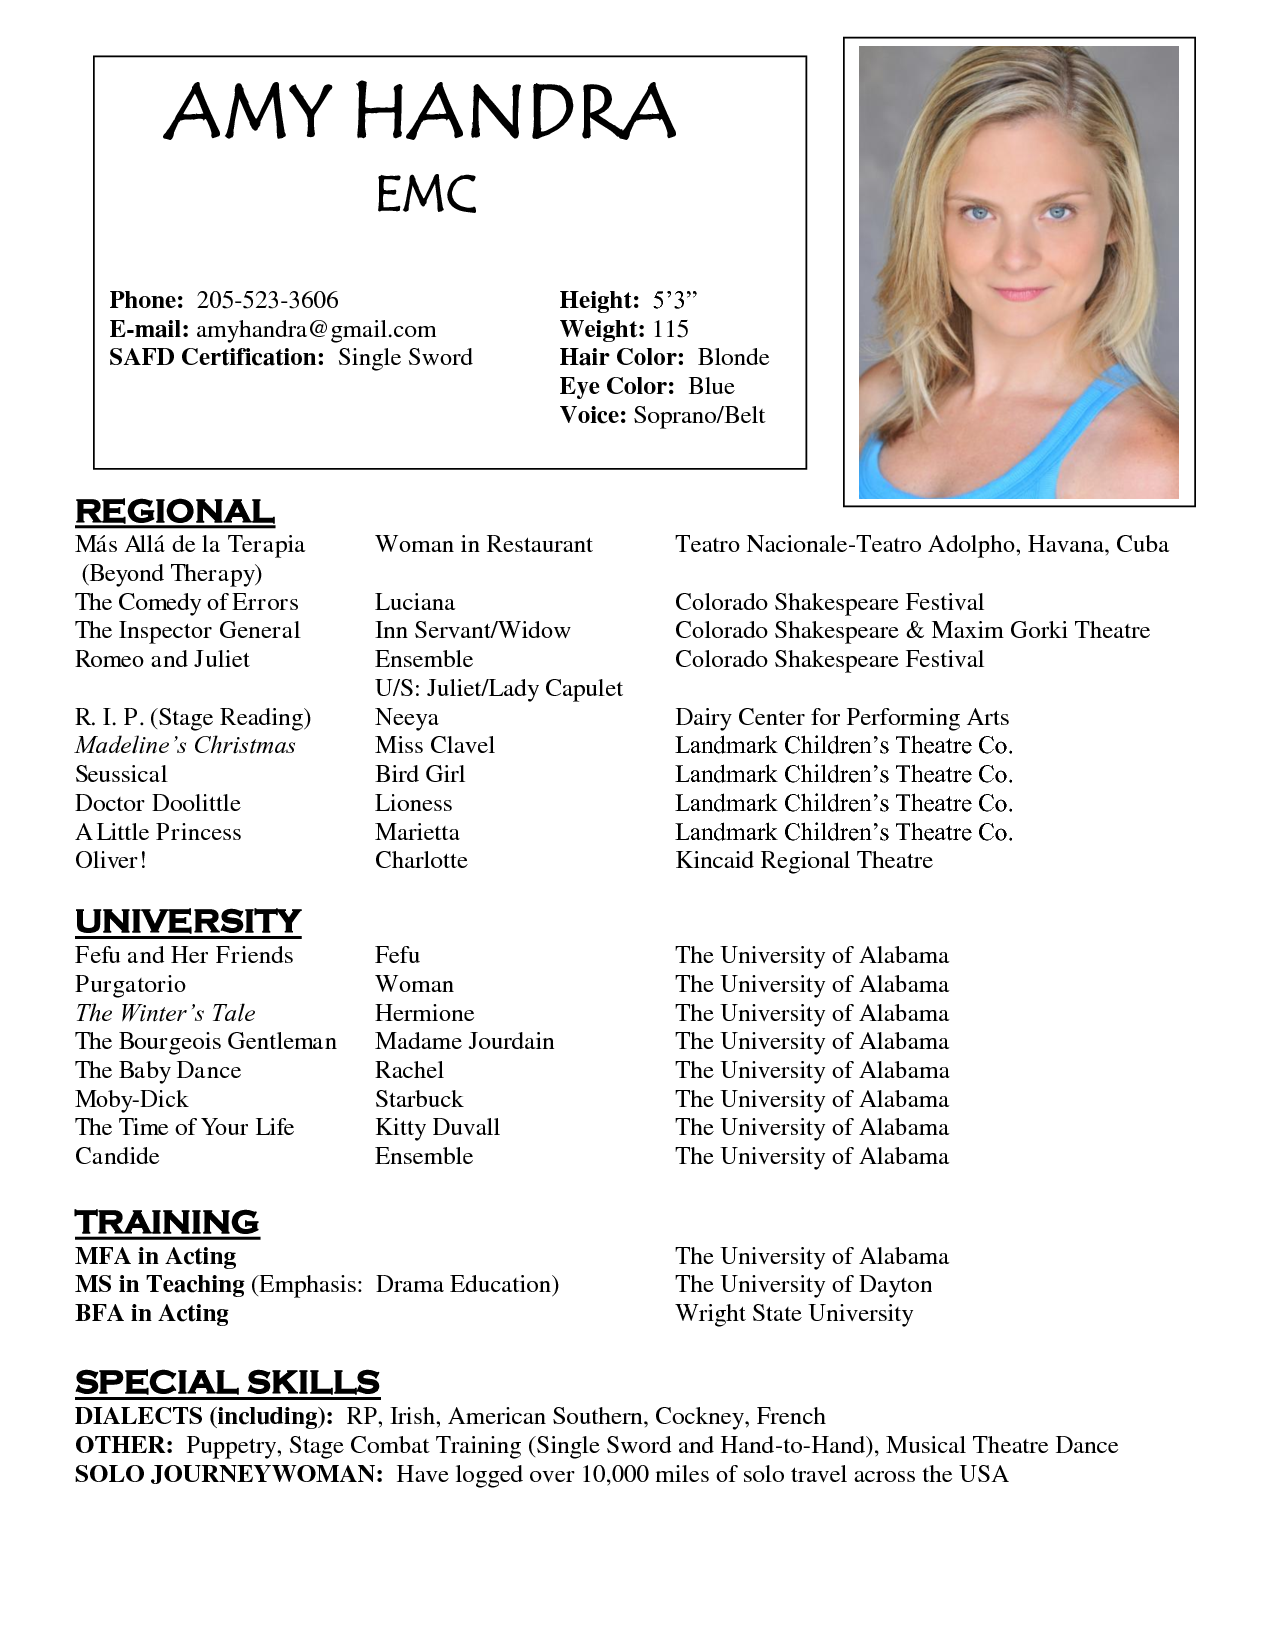 acting resume template for mac by amy handra - Resume Format For Actors